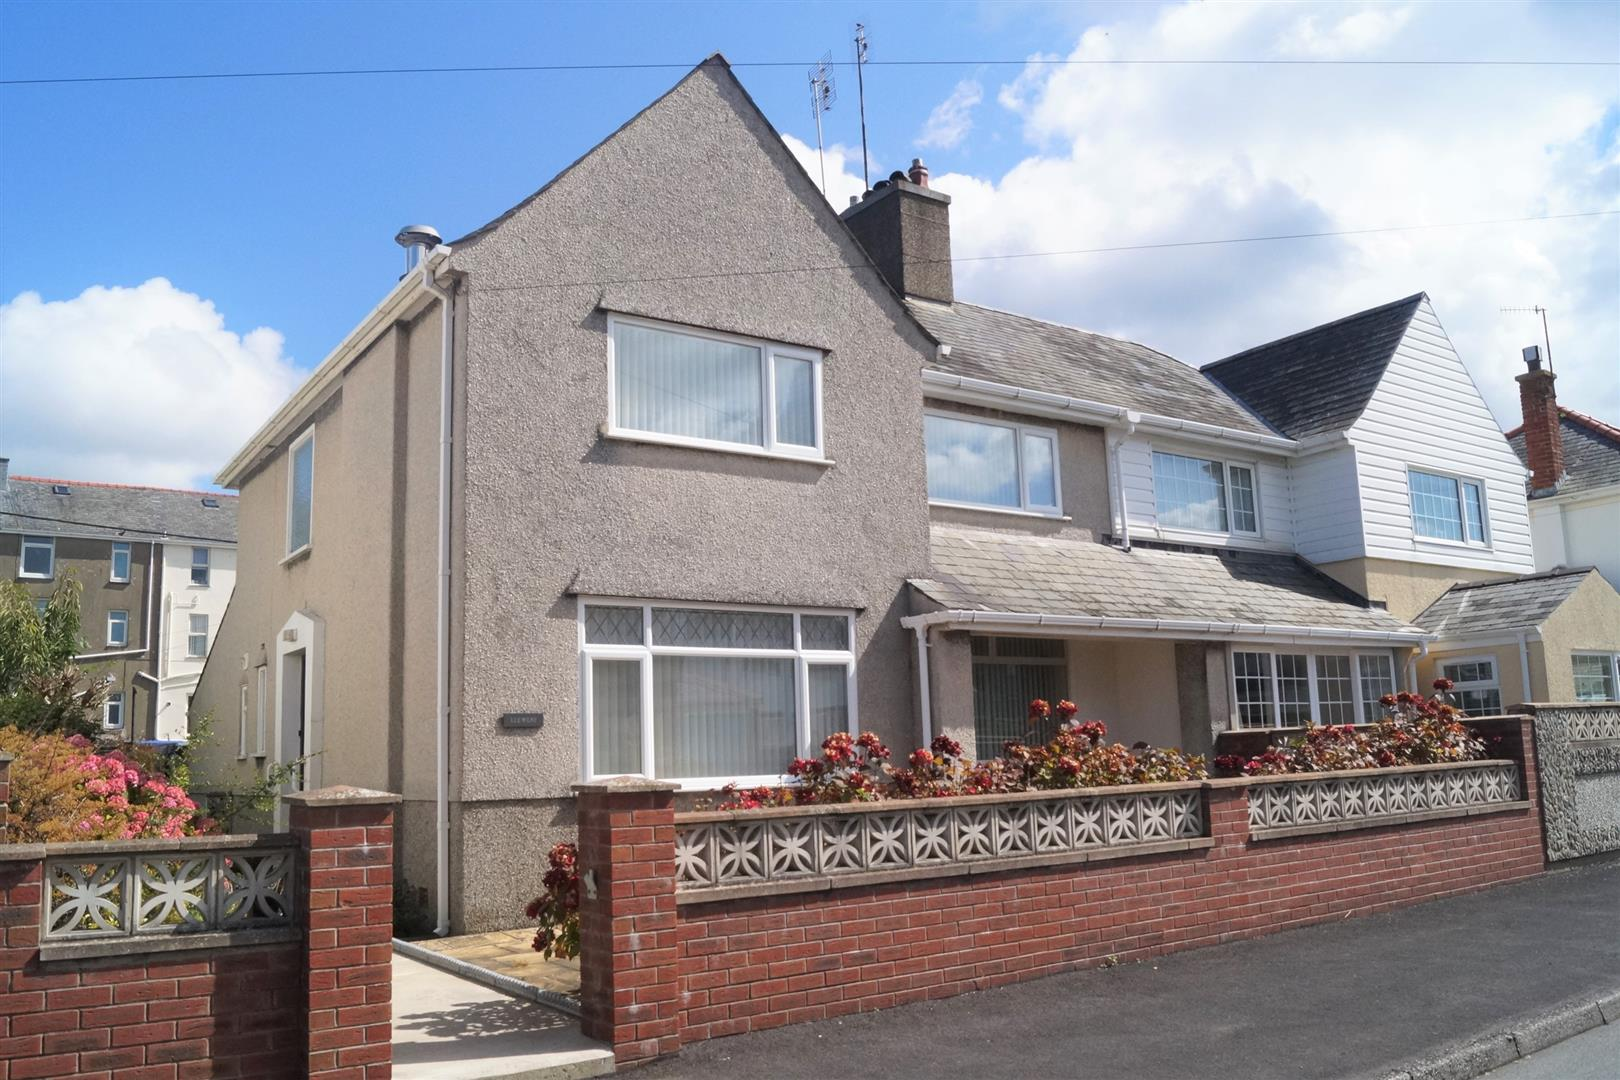 Manor Avenue, Pwllheli - £190,000/Offers in the region of